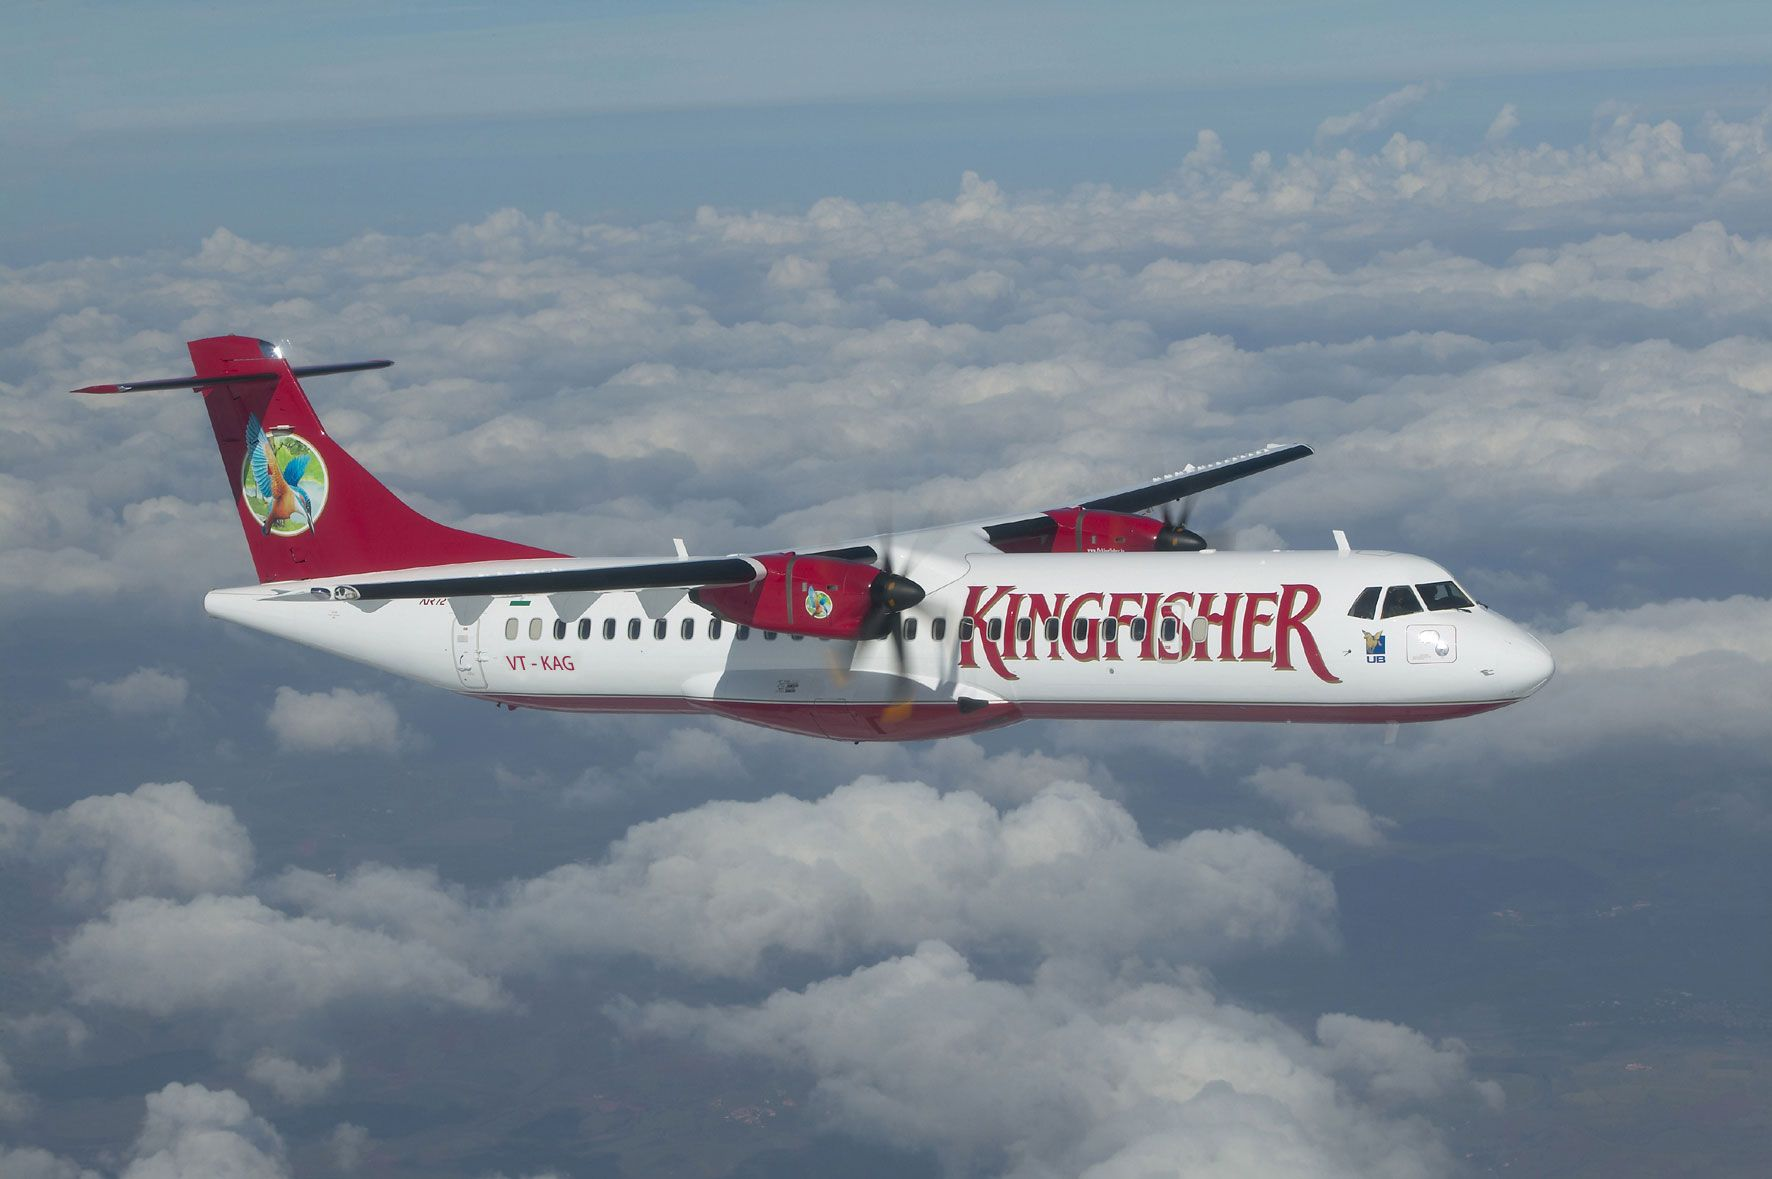 Kingfisher Airlines wants to fly again